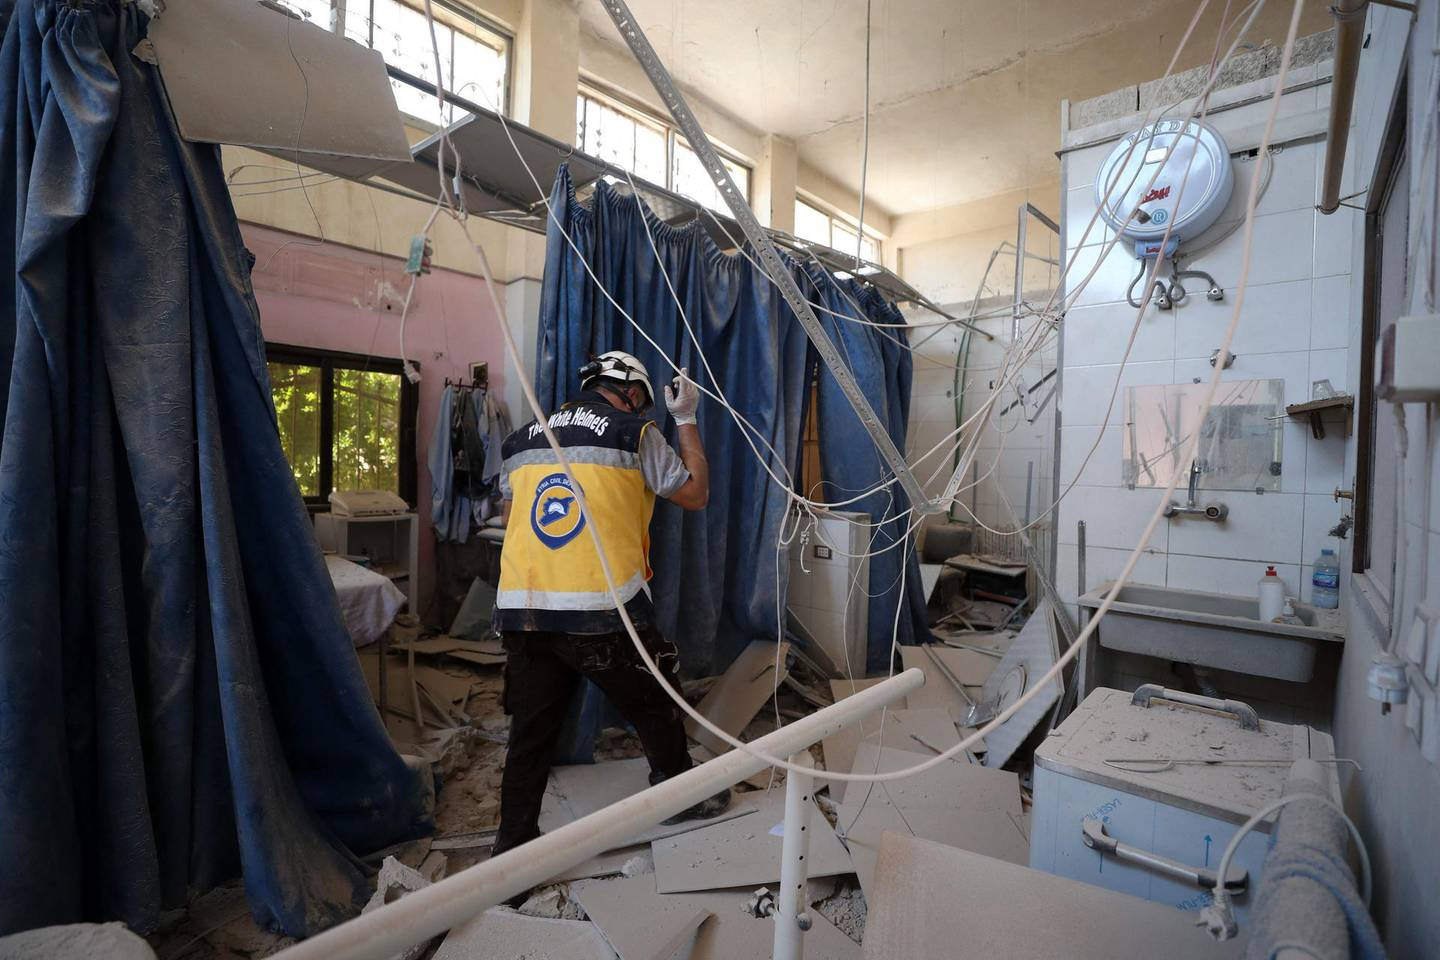 A member of Syria's Civil Defence service (White Helmets) inspects the damage on June 13, 2021, in one of the rooms of the Al-Shifaa hospital, a day after it was hit by artillery shells in the rebel-held northern Syrian city of Afrin, reportedly fired by pro-regime forces, killing at least 18 people, and wounding more than 23, according to a war monitor. The Syrian Observatory for Human Rights said a doctor, three hospital staff, two women and two children as well as a rebel commander were among the dead.  / AFP / OMAR HAJ KADOUR